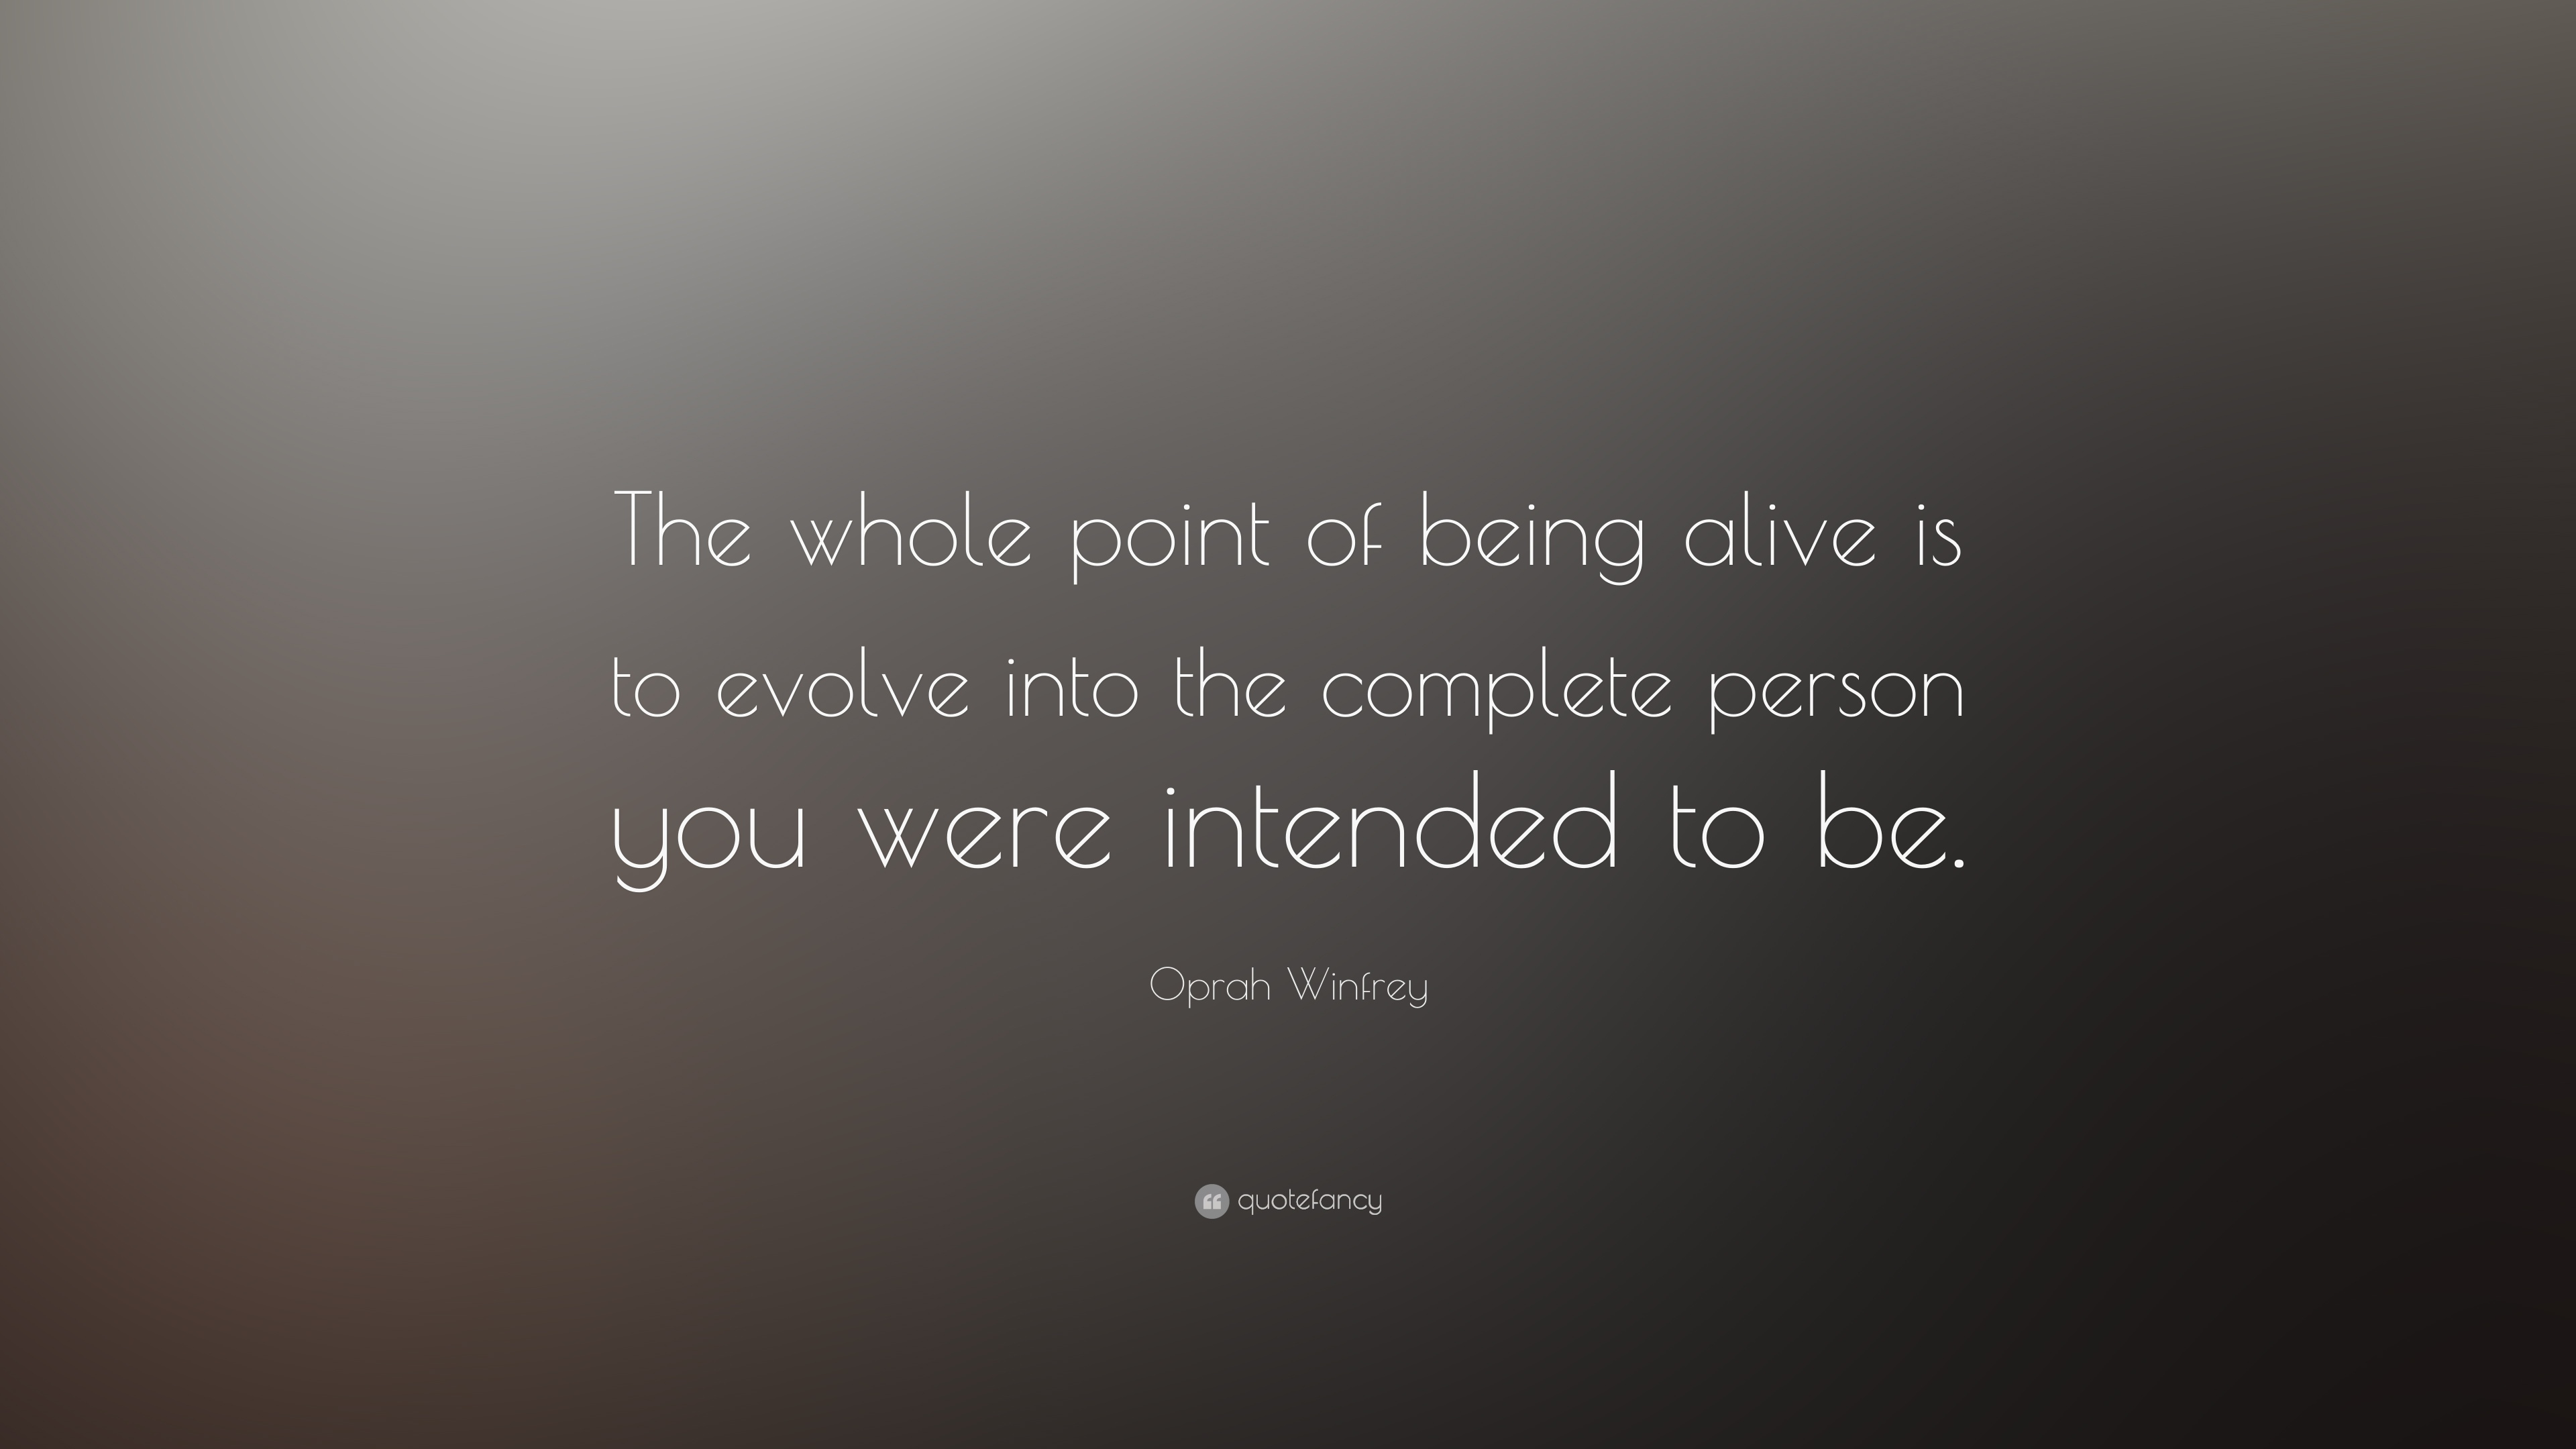 Oprah Winfrey Quote The Whole Point Of Being Alive Is To Evolve